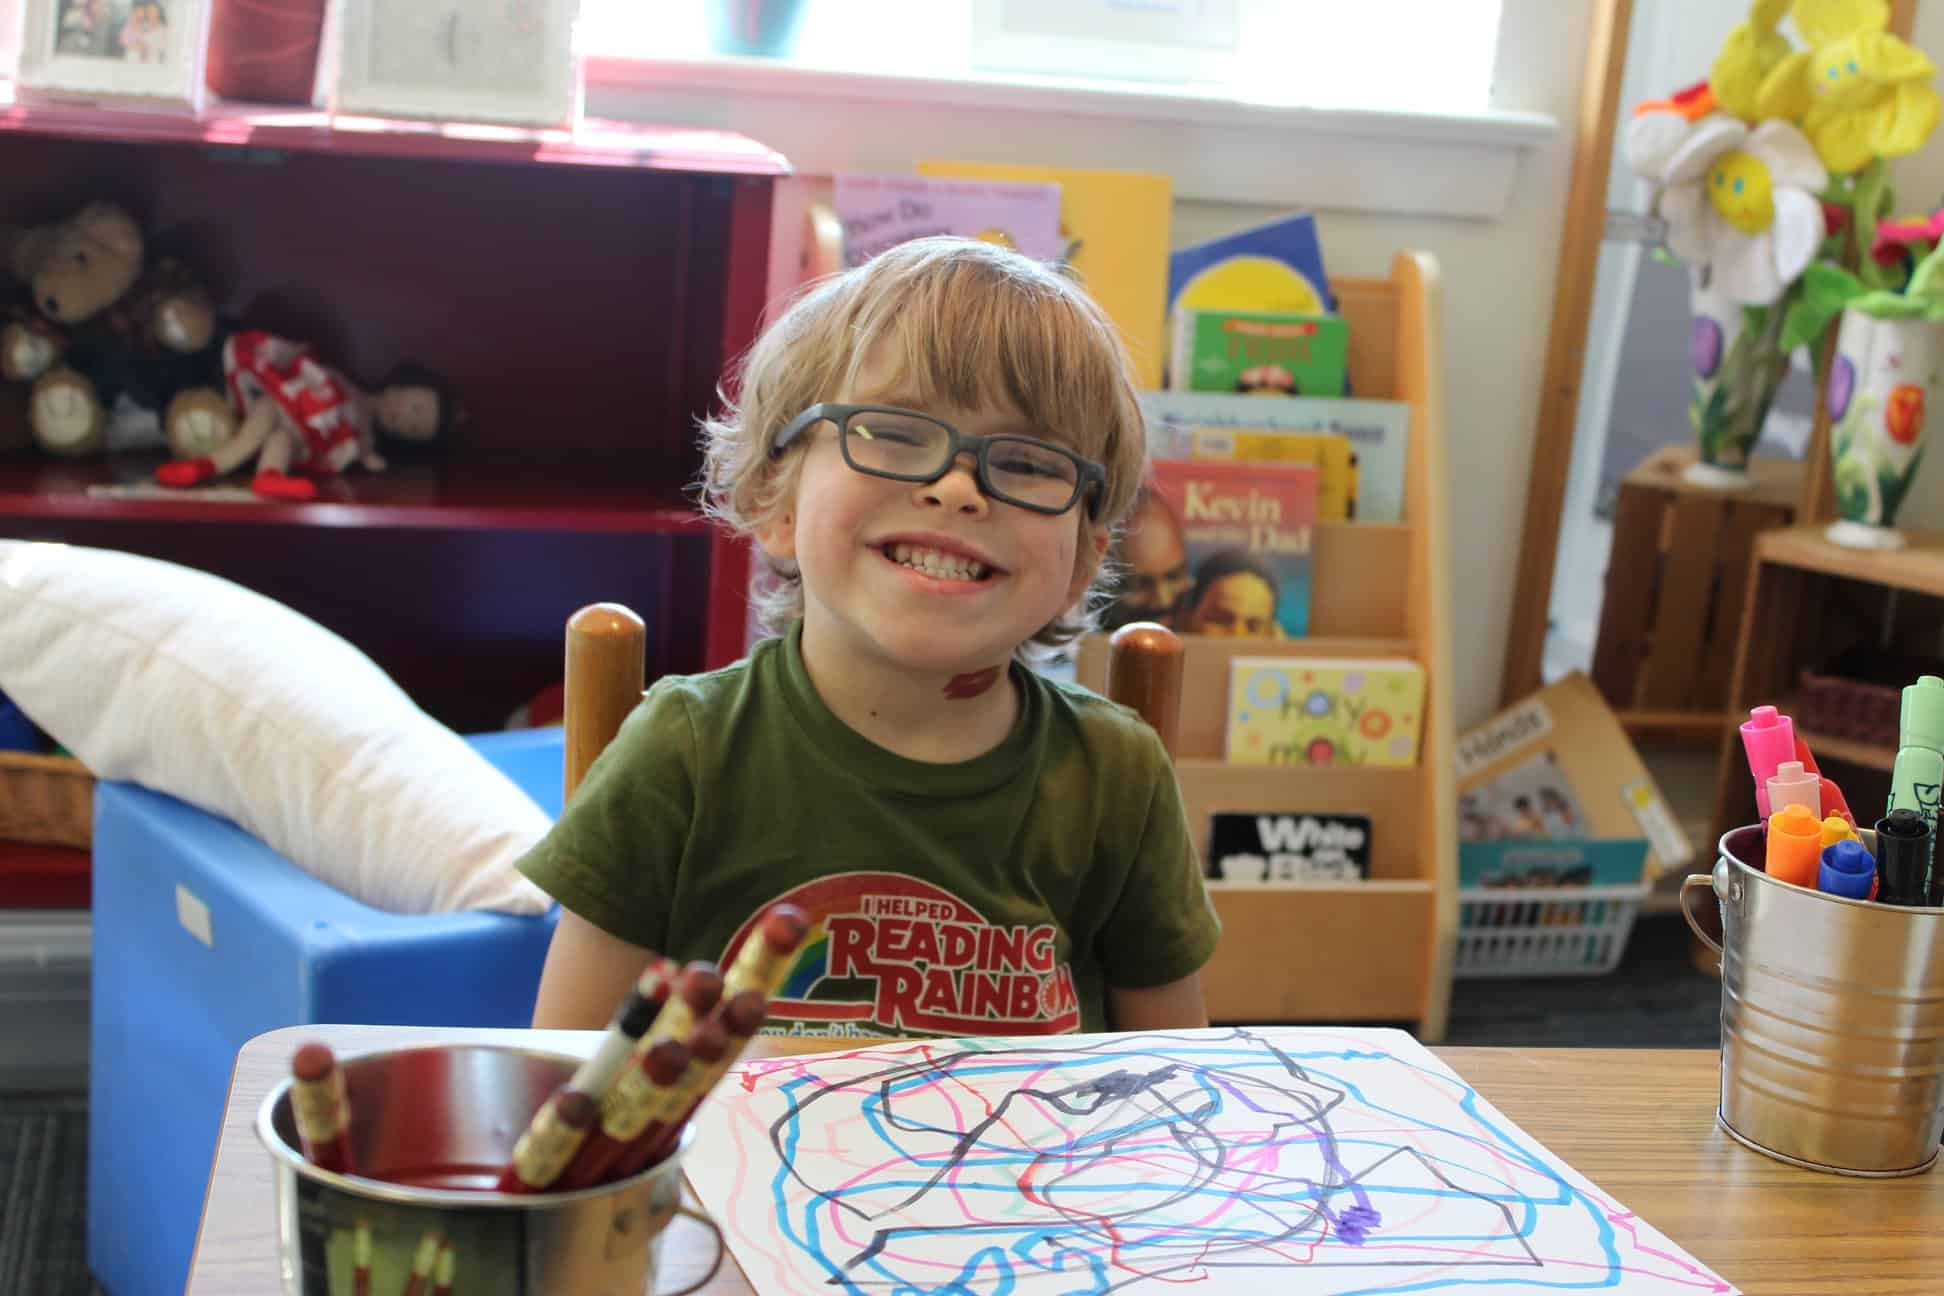 A preschool boy wearing glasses sits and smiles at his desk in his classroom